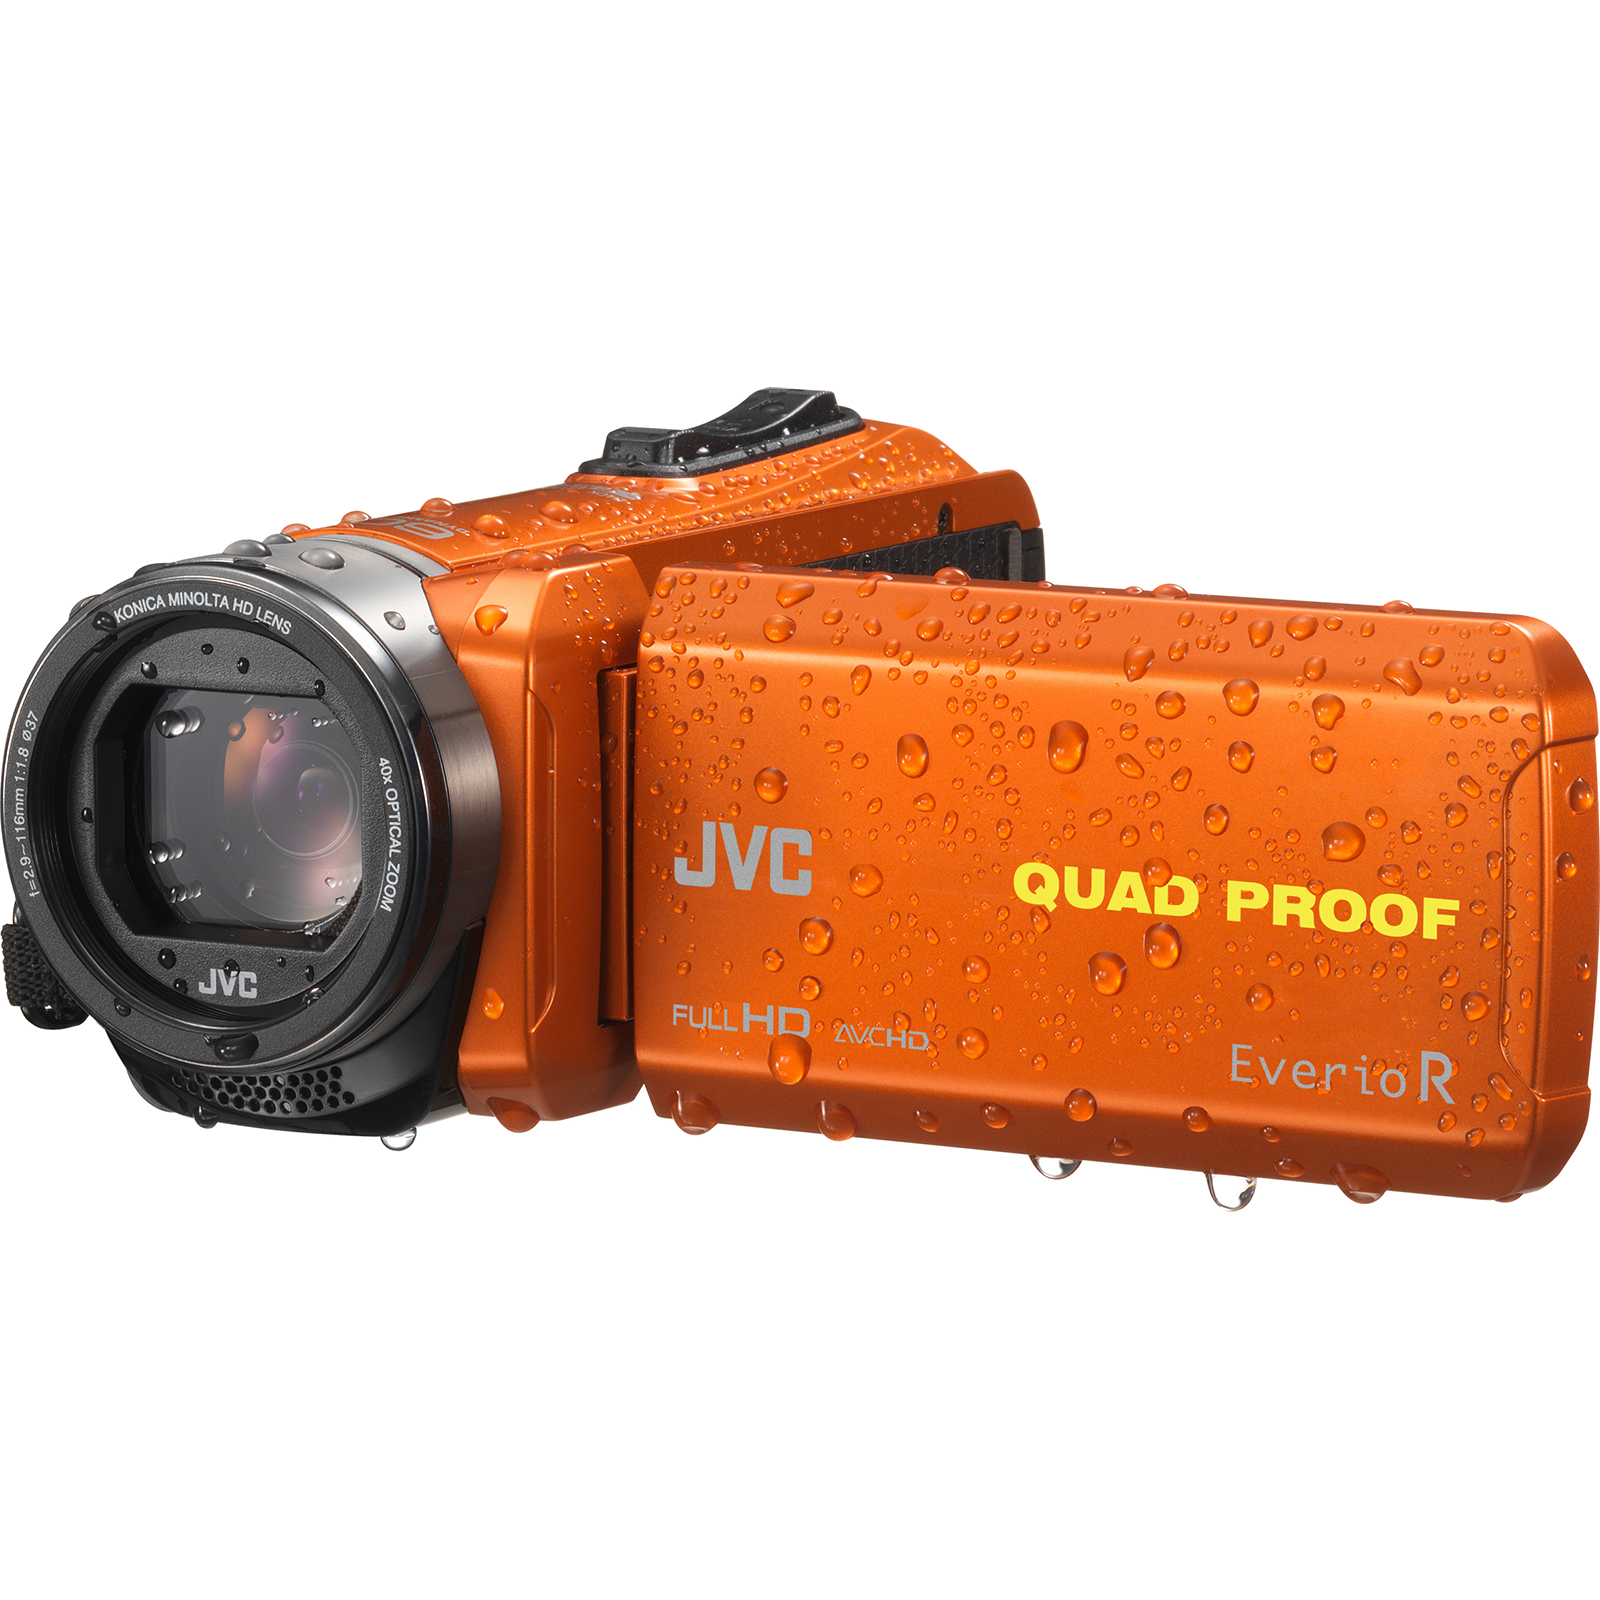 JVC Everio GZ-R440 Quad Proof Full HD Digital Video Camera Camcorder (Orange)